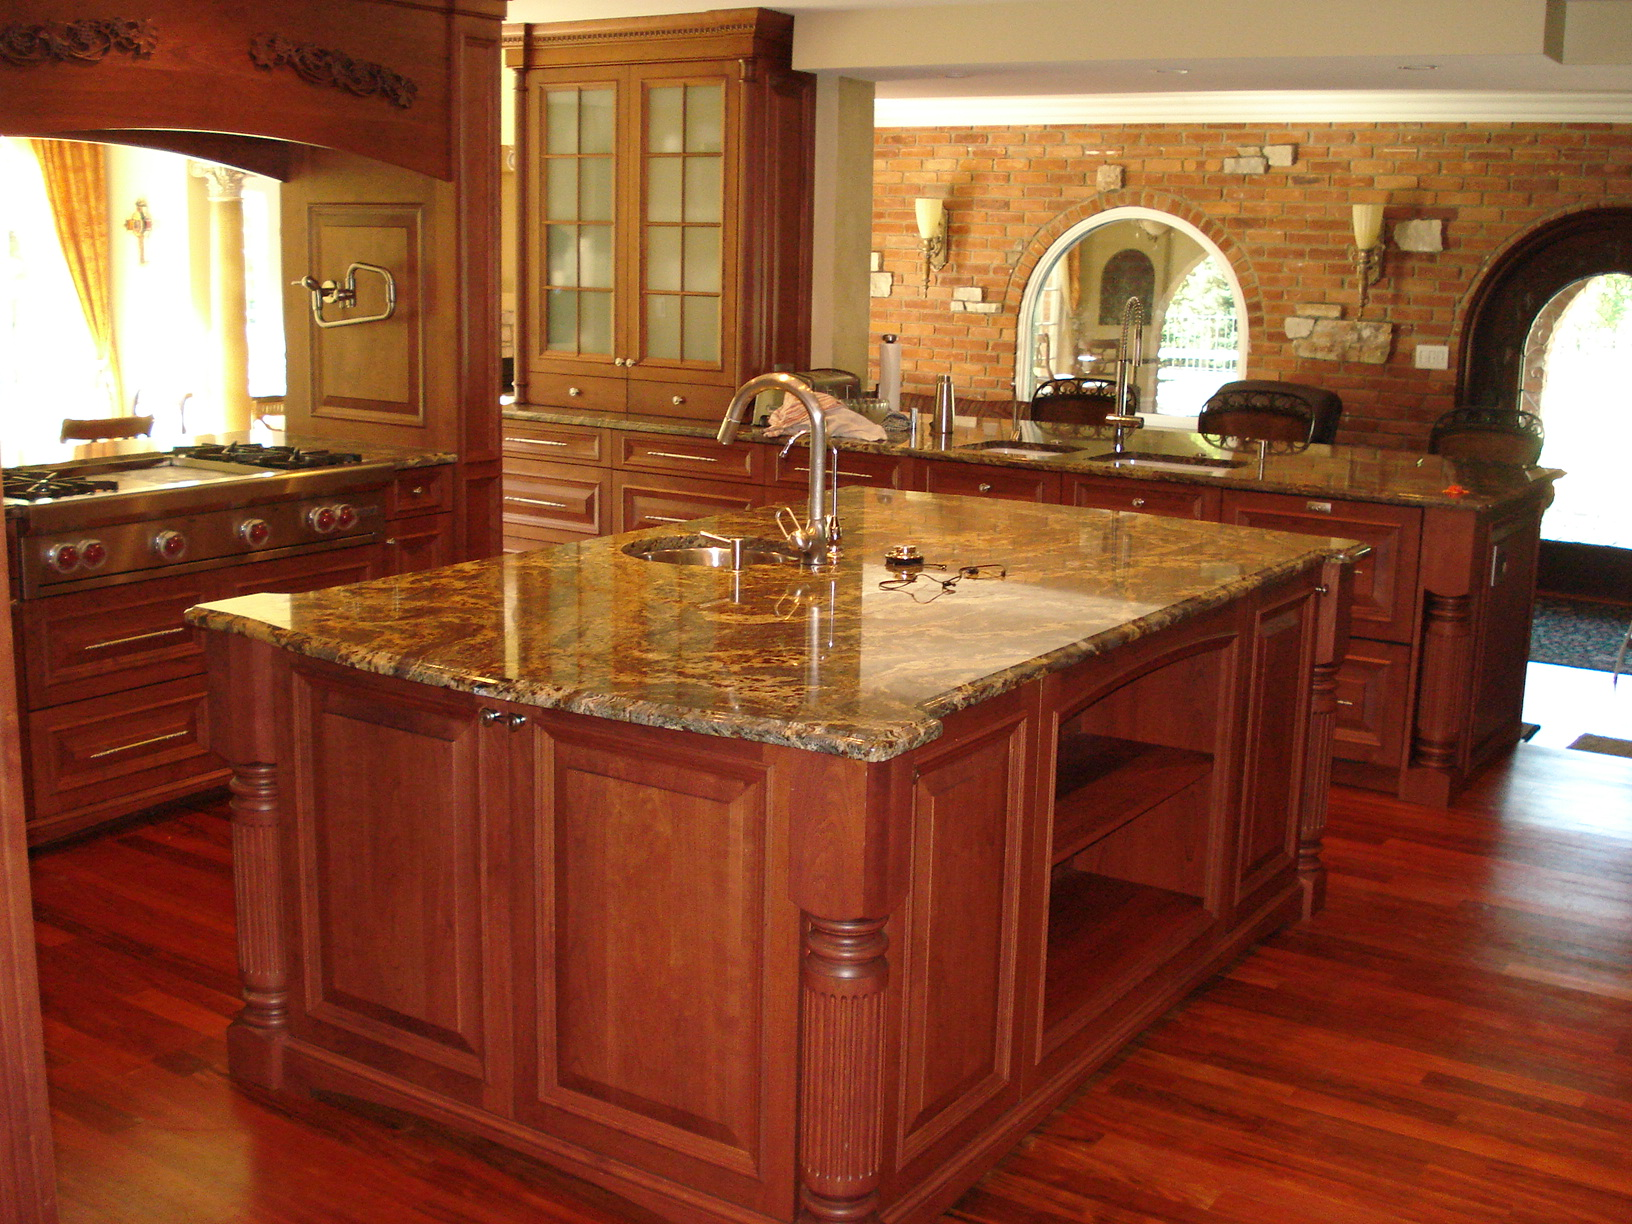 Greasy-Counter-Top-With-Vintage-Kitchen-Layout-Also-Aberdeen-Quarts-Table-Top-Organizer-Oaks-Cabinetry-Combined-Stainless-Faucet-Ideas.jpeg